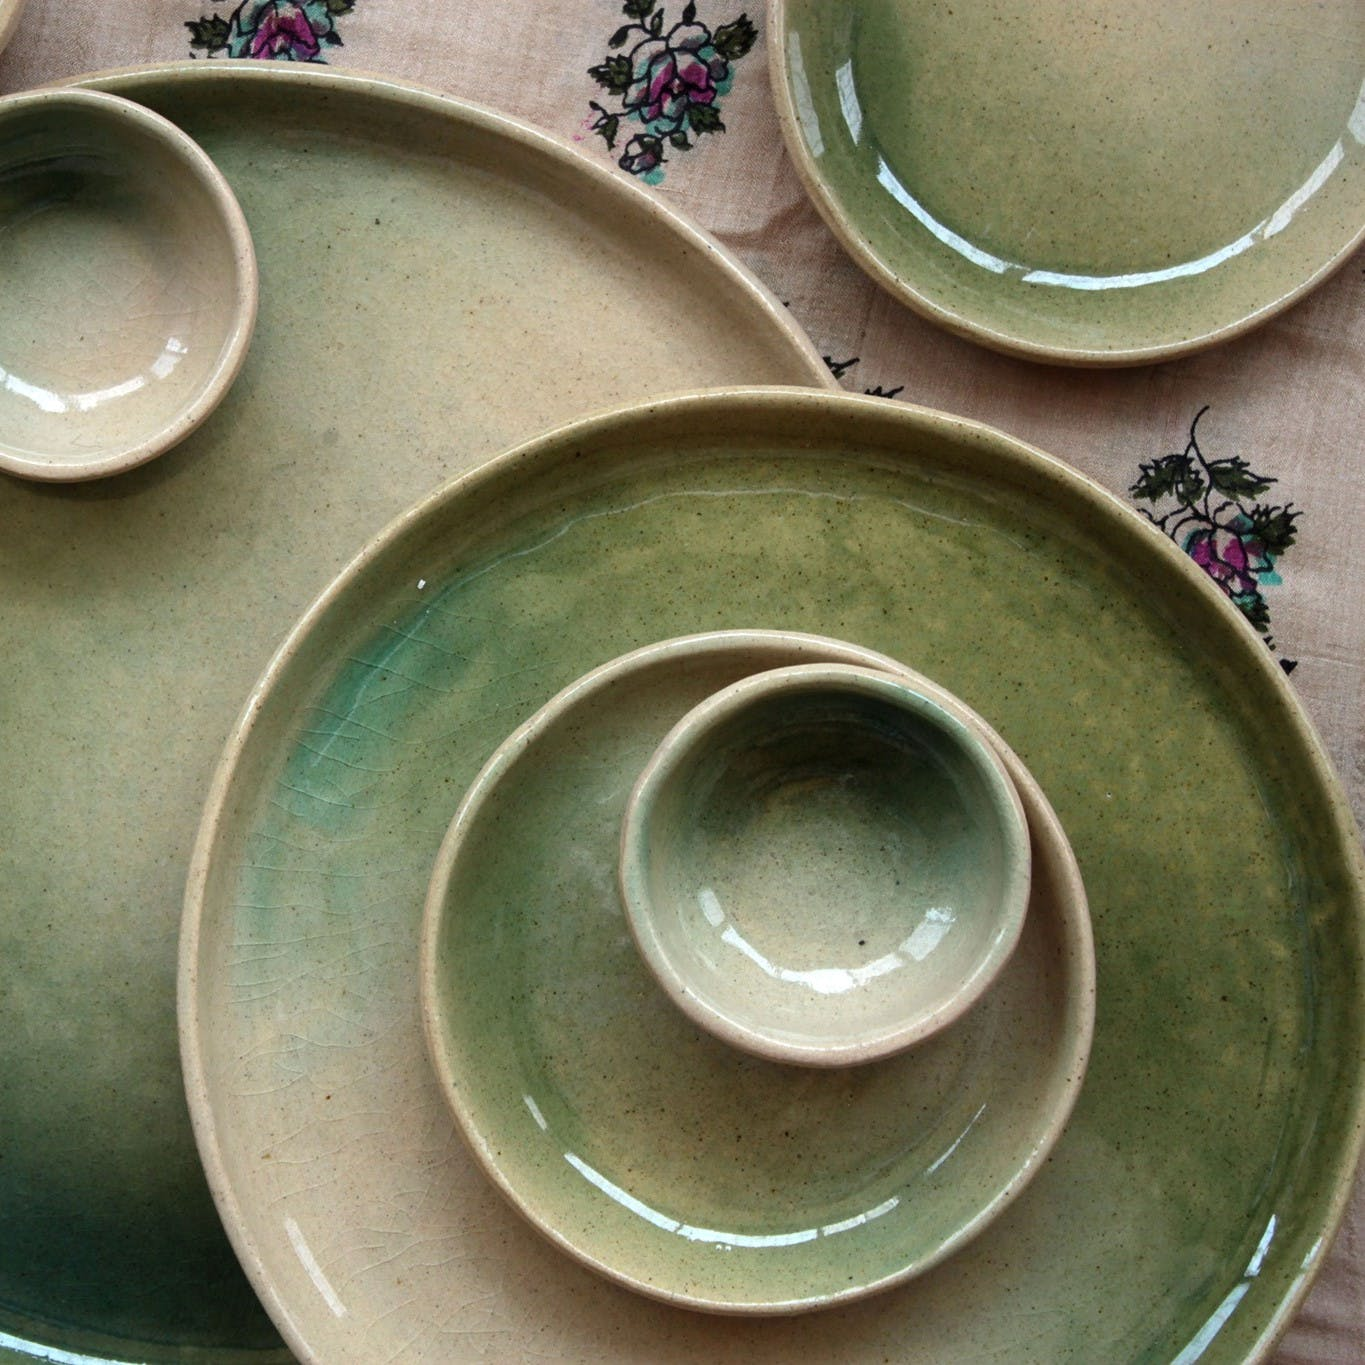 Dishware,earthenware,Green,Plate,Serveware,Dinnerware set,Platter,Saucer,Circle,Tableware